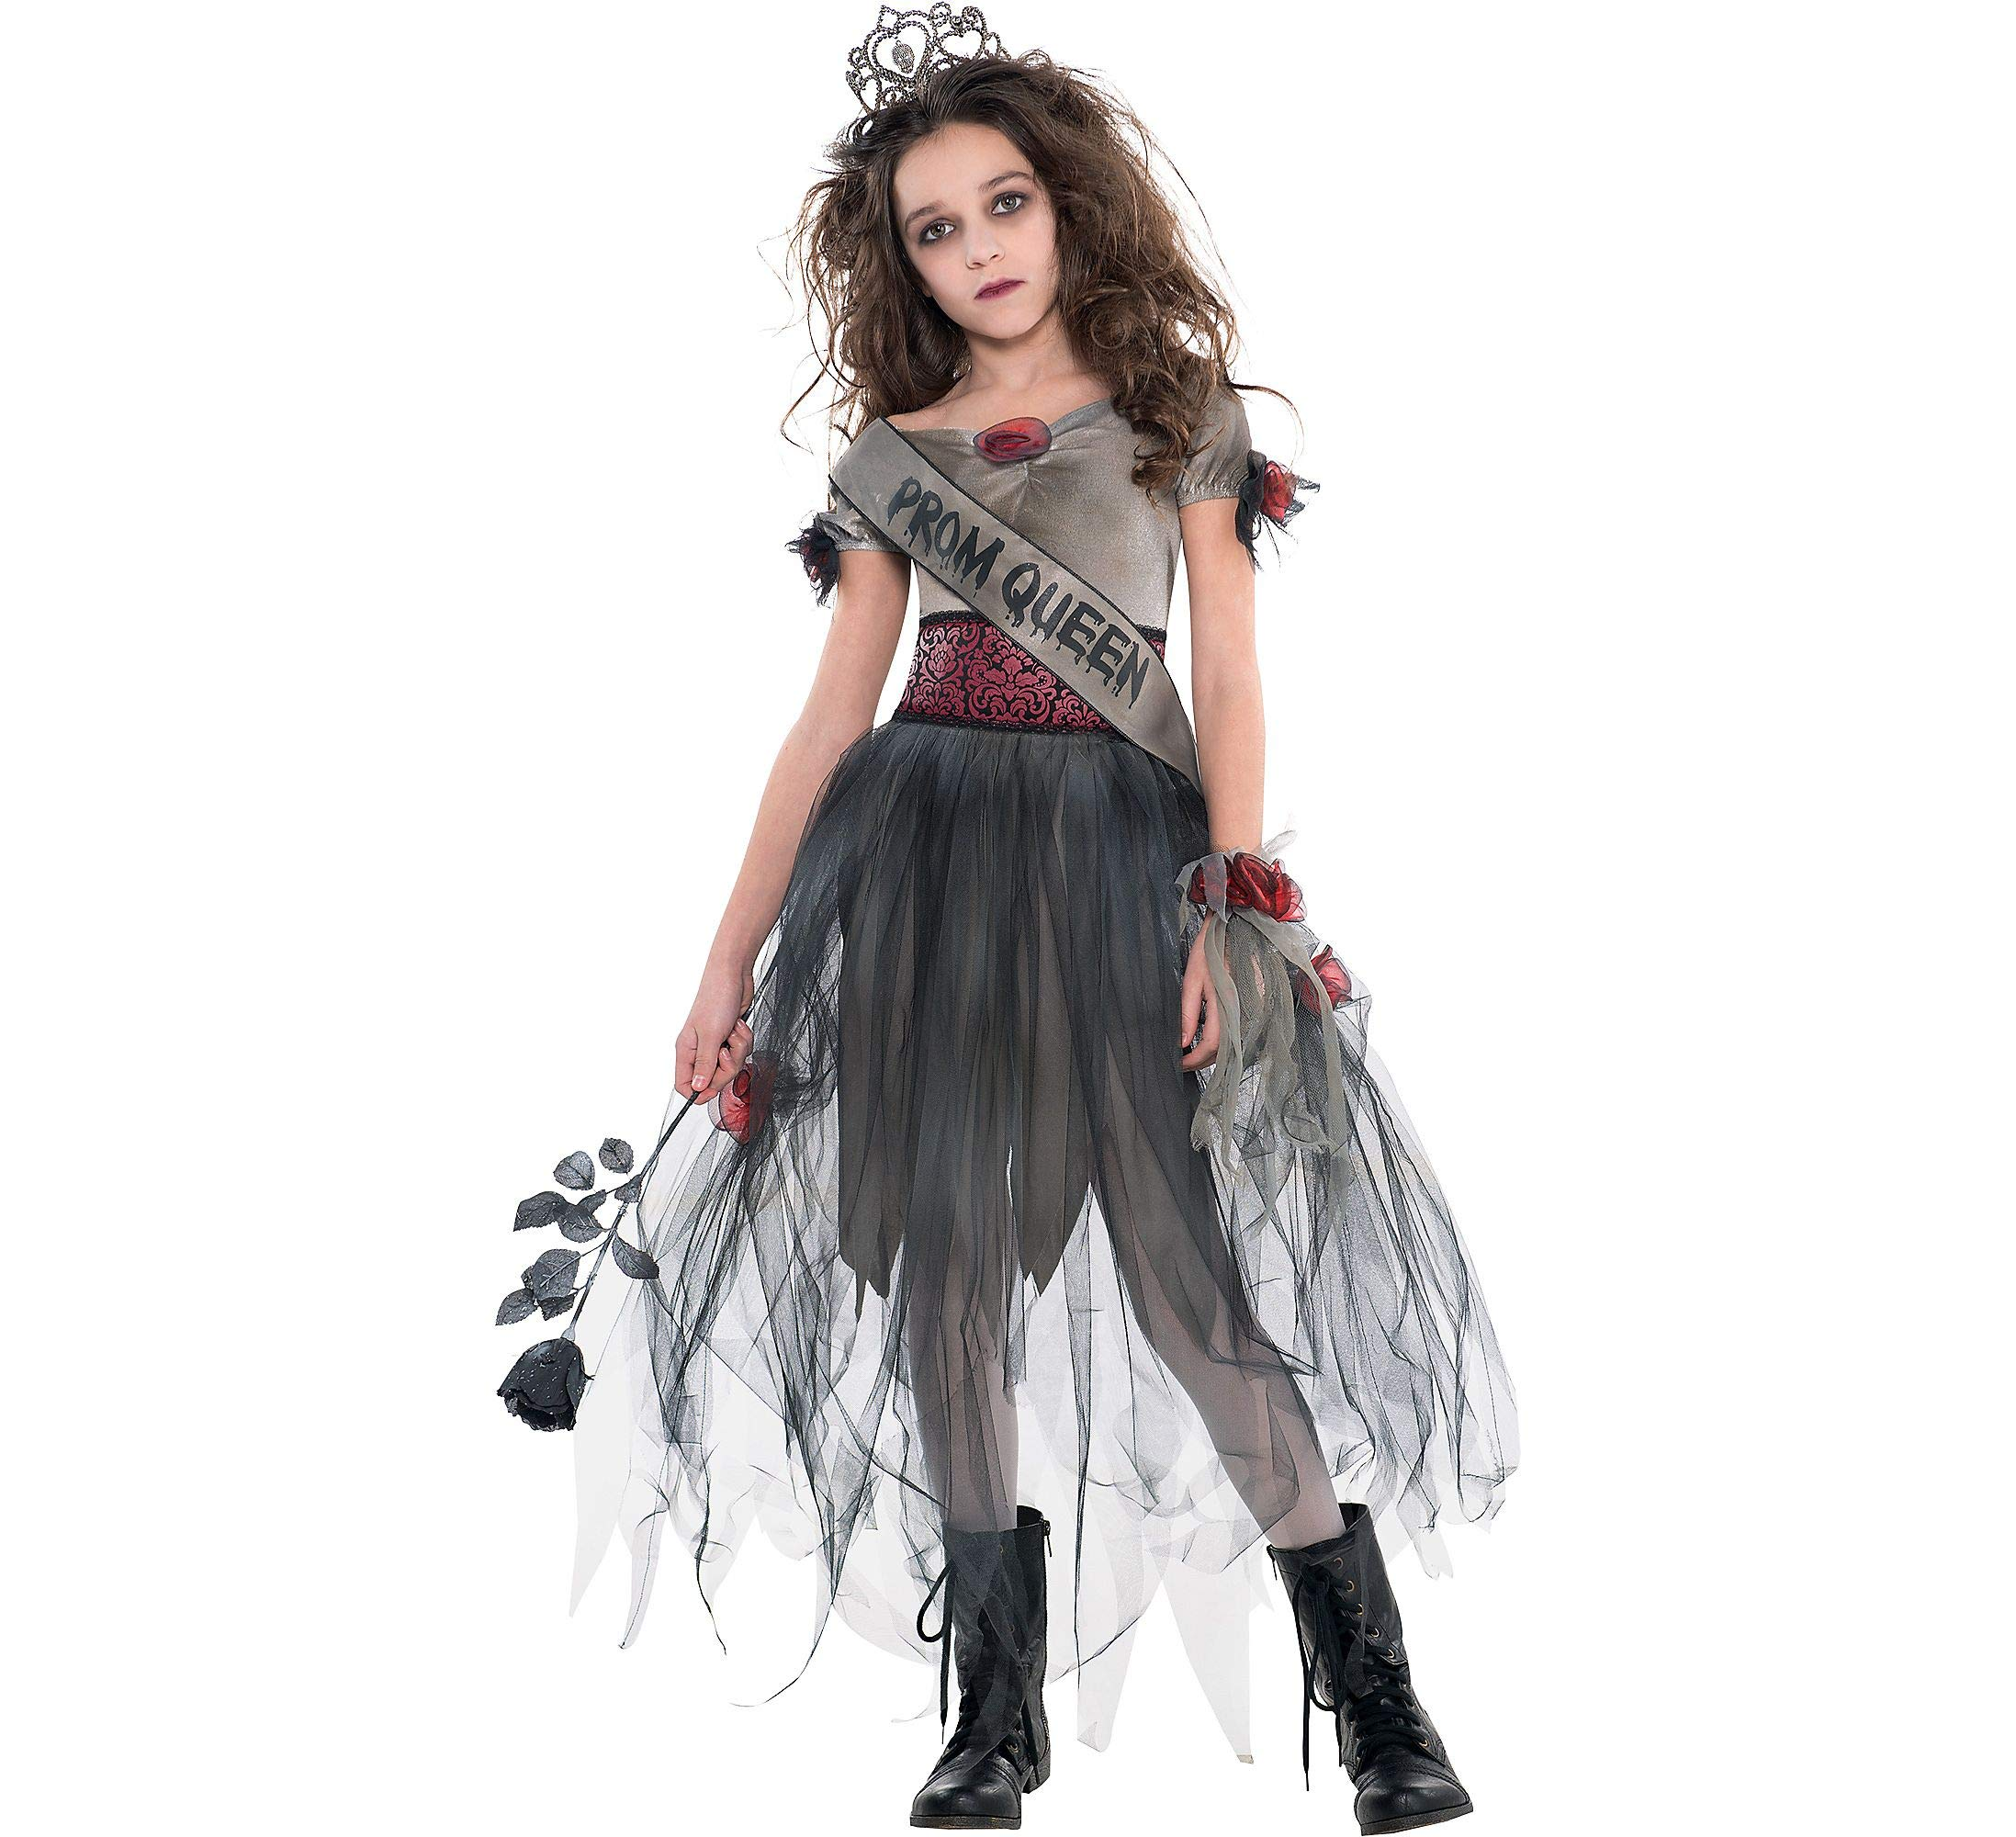 AMSCAN Prom Corpse Costume Halloween Costume for Girls, Medium, with Included Accessories